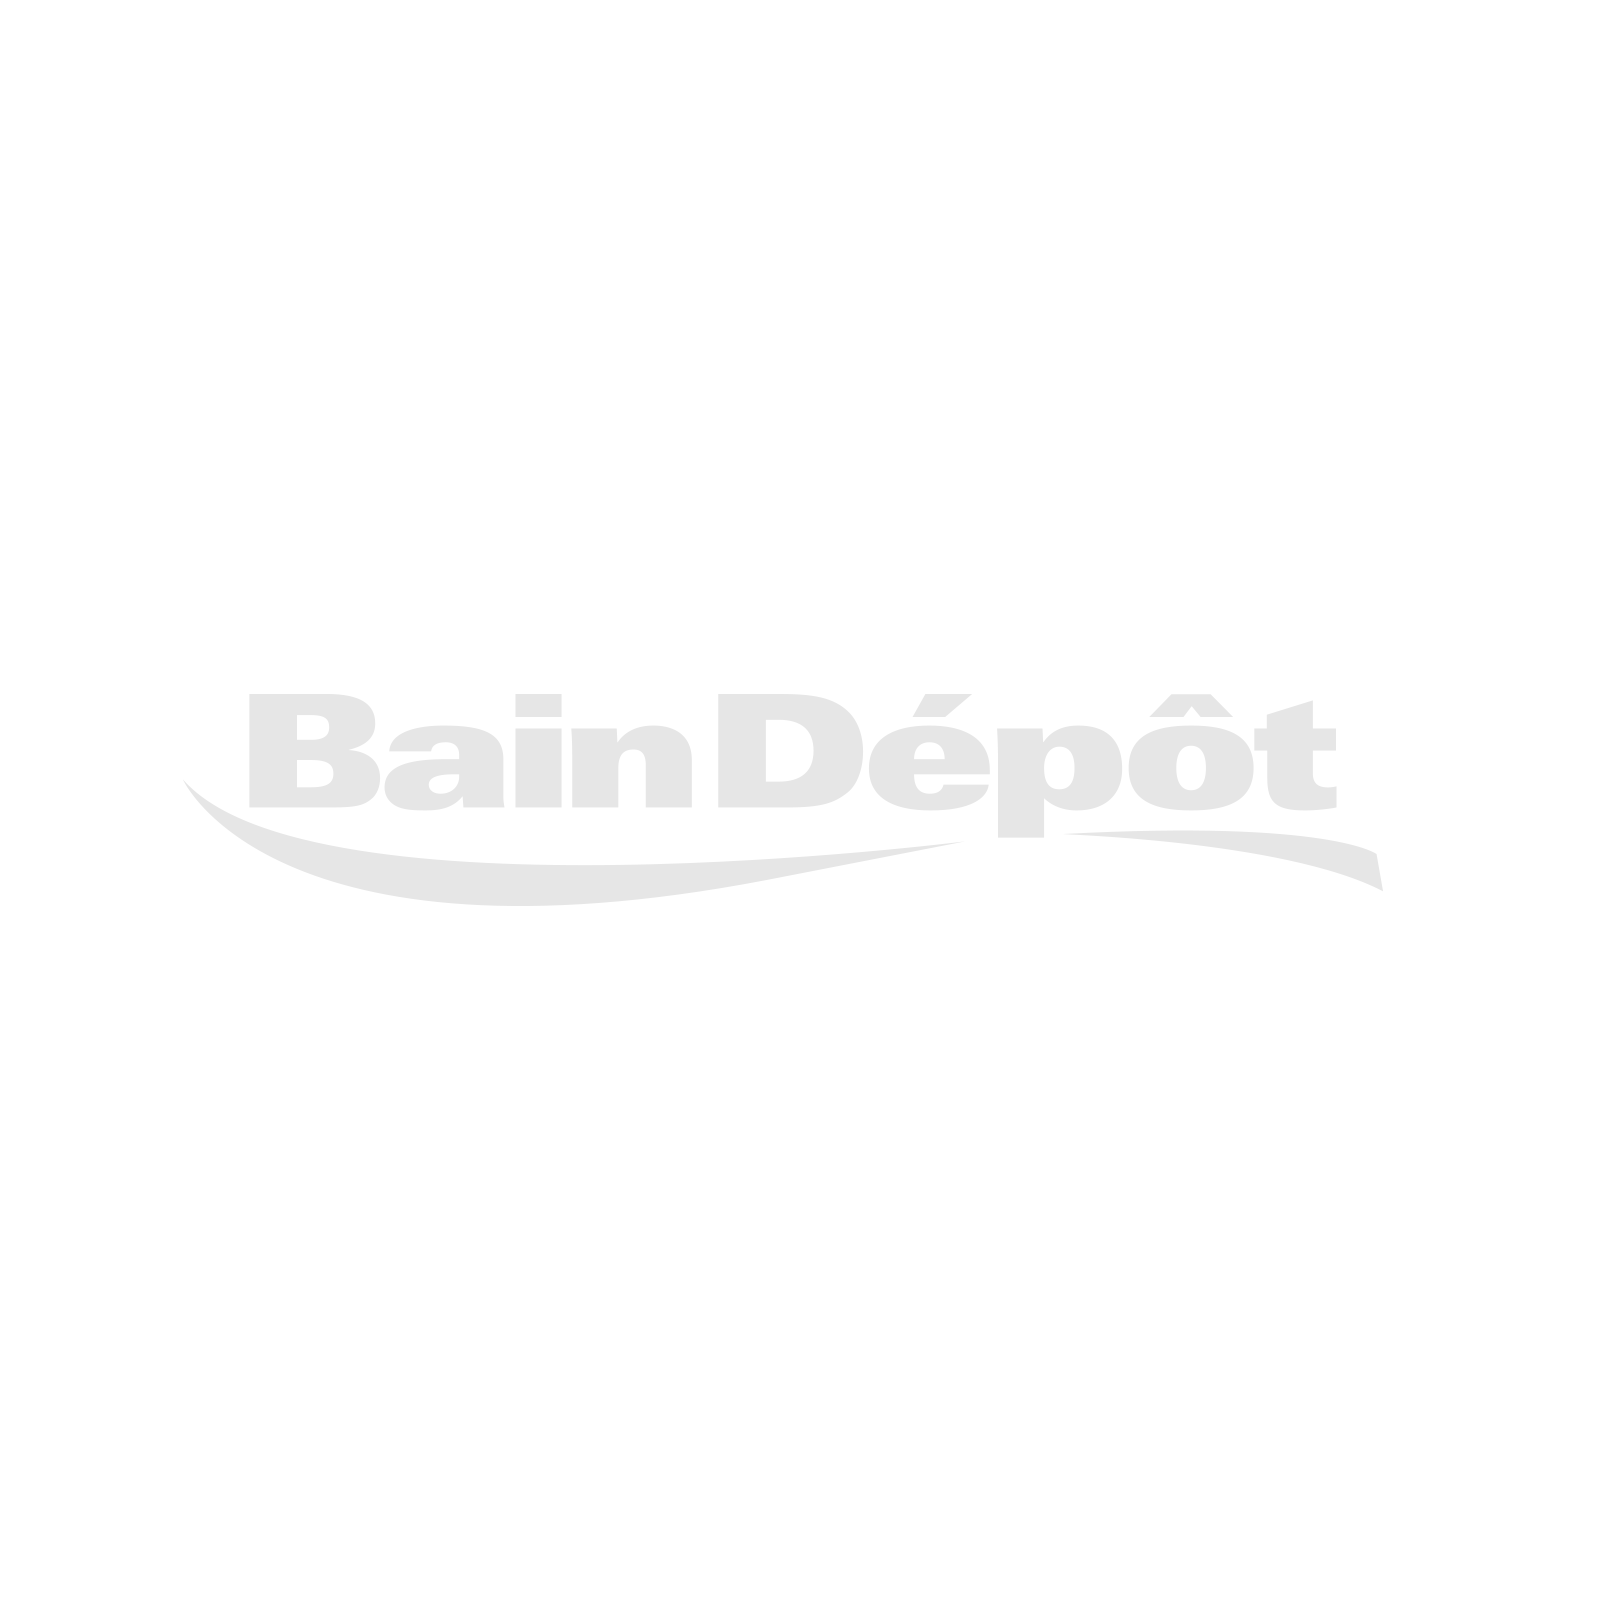 "60"" x 32"" rectangular shower base for right corner installation"